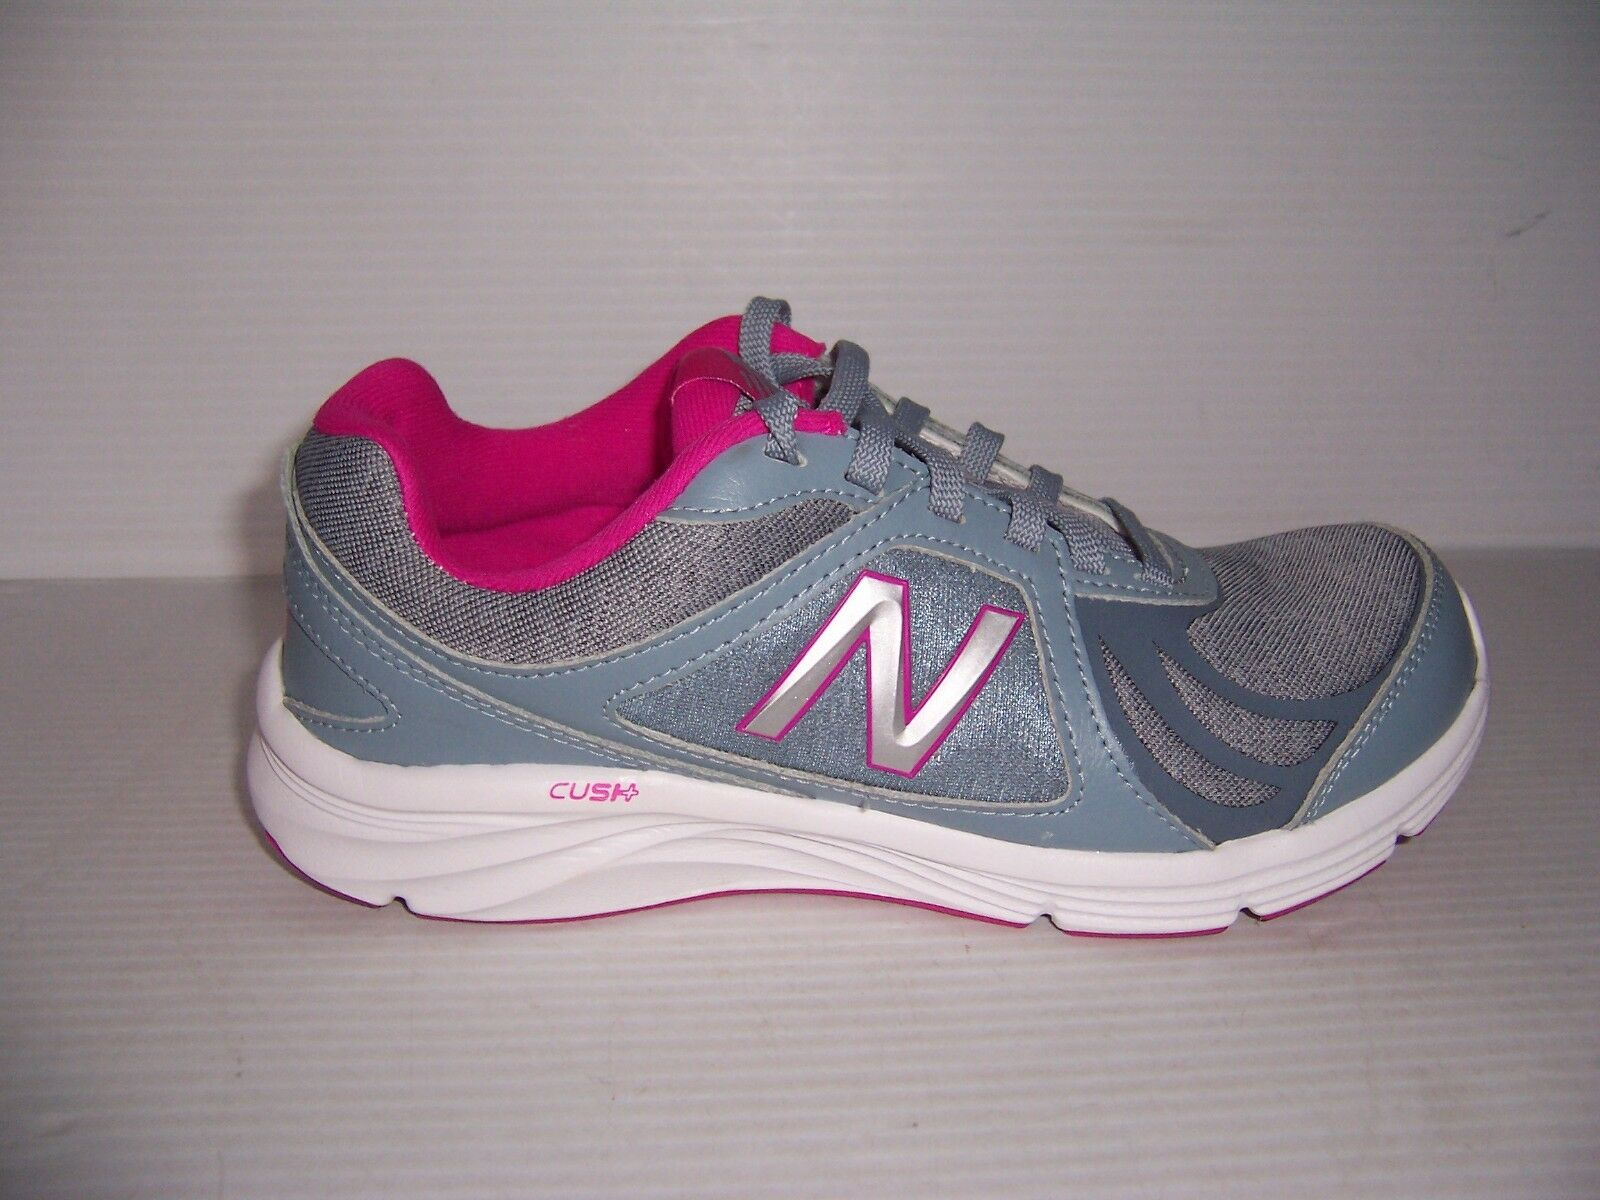 NEW BALANCE WALKING MARCHE WOMENS GRAY PURPLE WALKING SHOES VARIOUS SIZES NEW